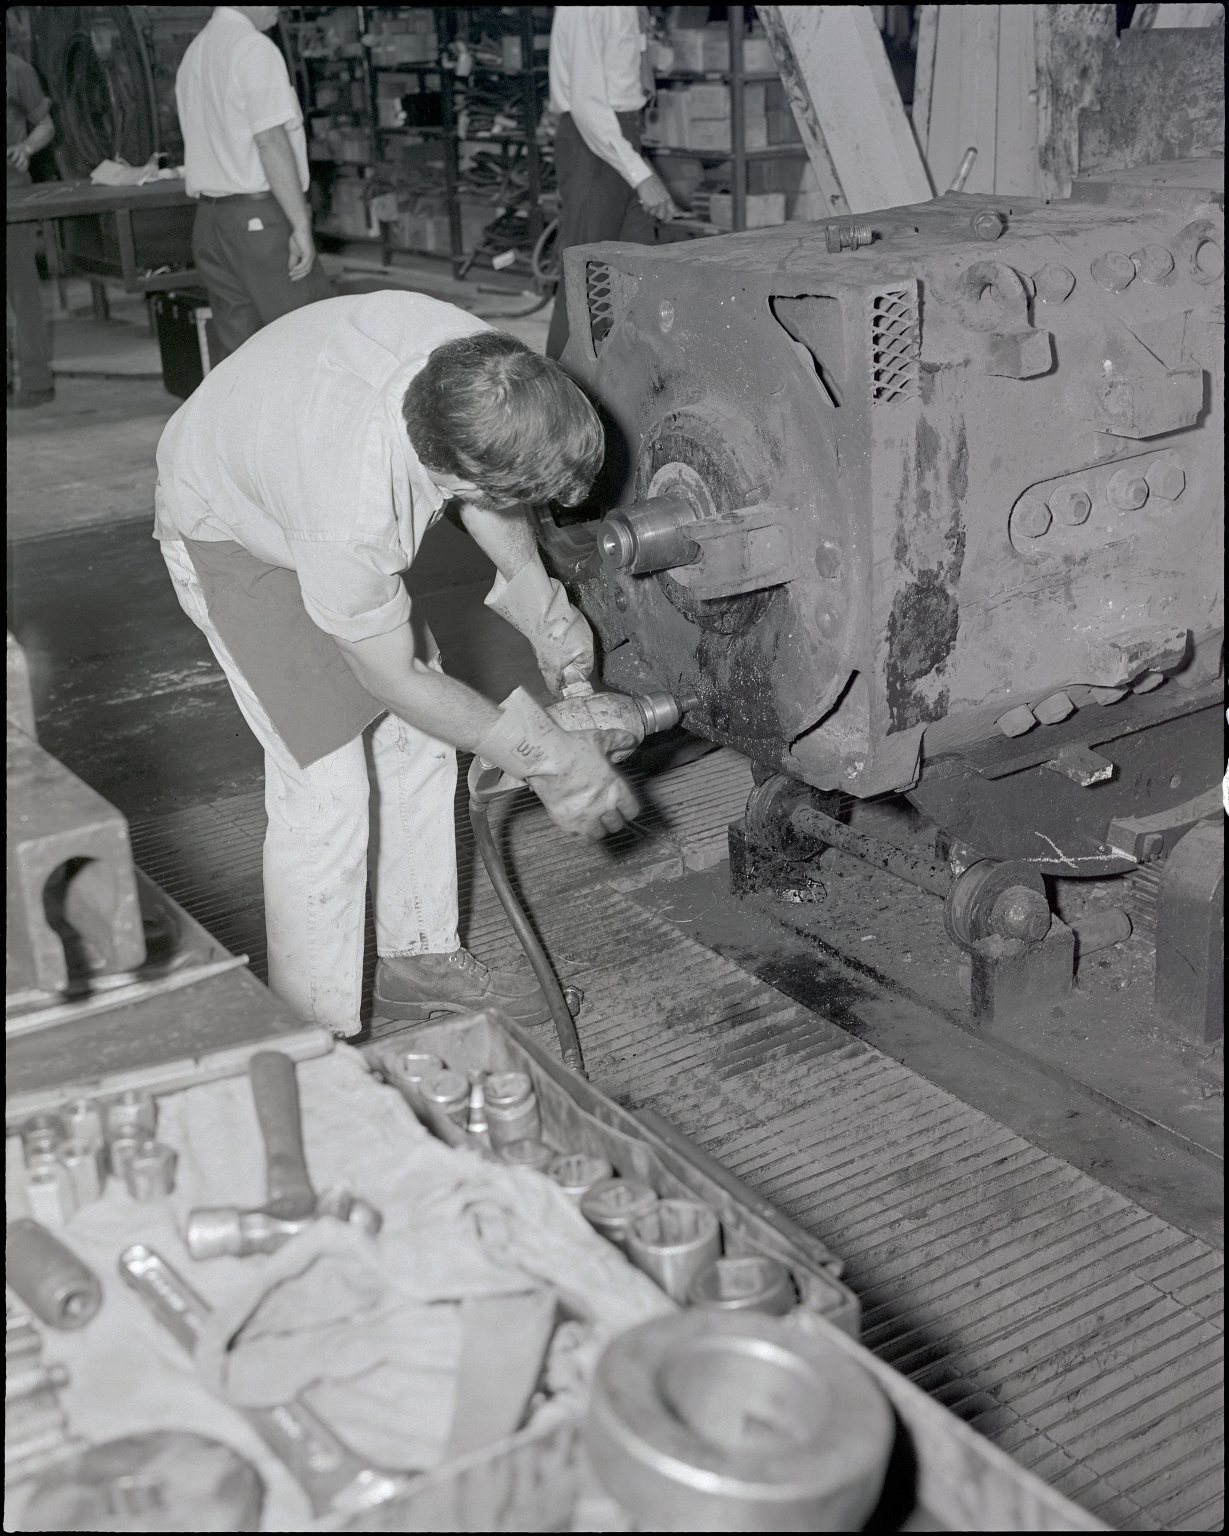 Employee and Locomotive Component